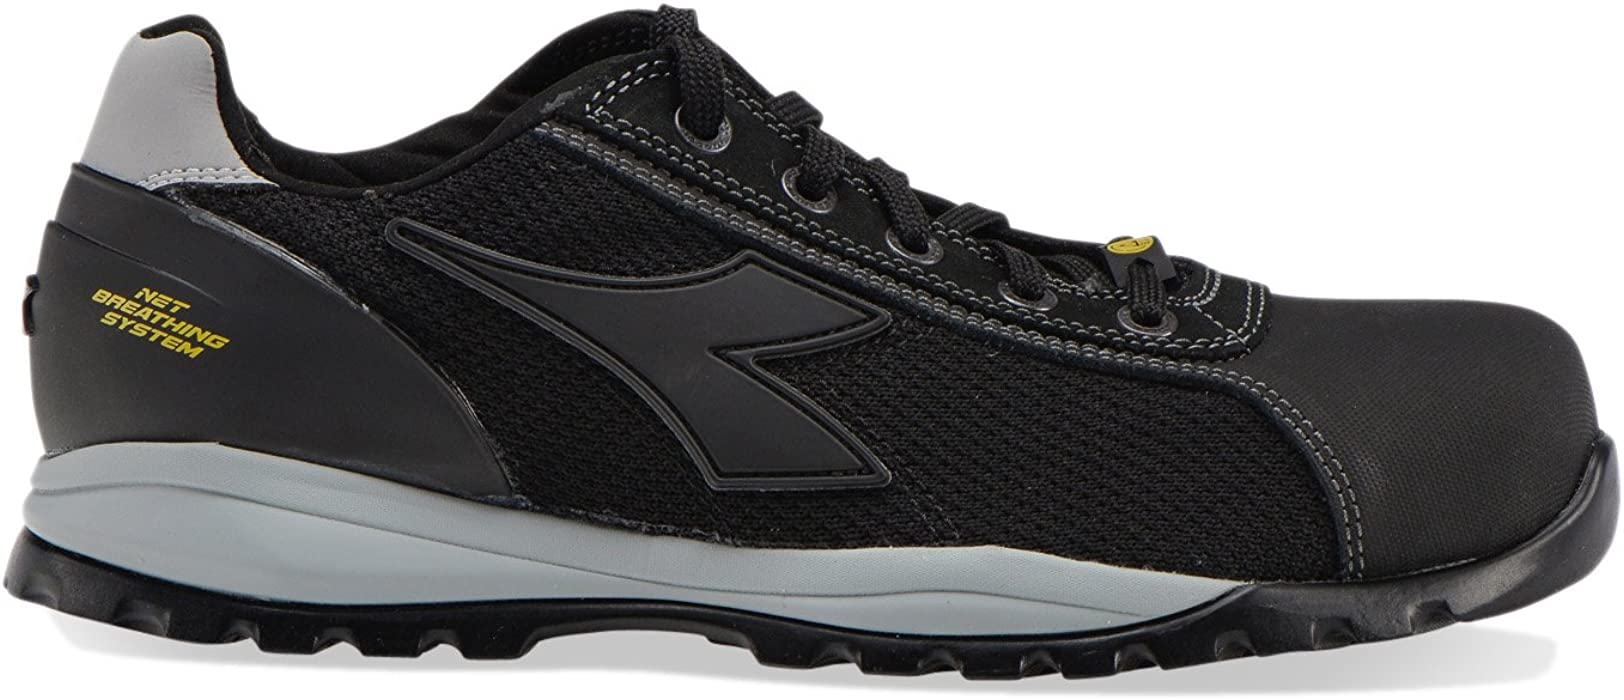 disponibilità nel Regno Unito f07da 0cb56 Utility Diadora - Low work shoe GLOVE TECH LOW PRO S1P SRA ...